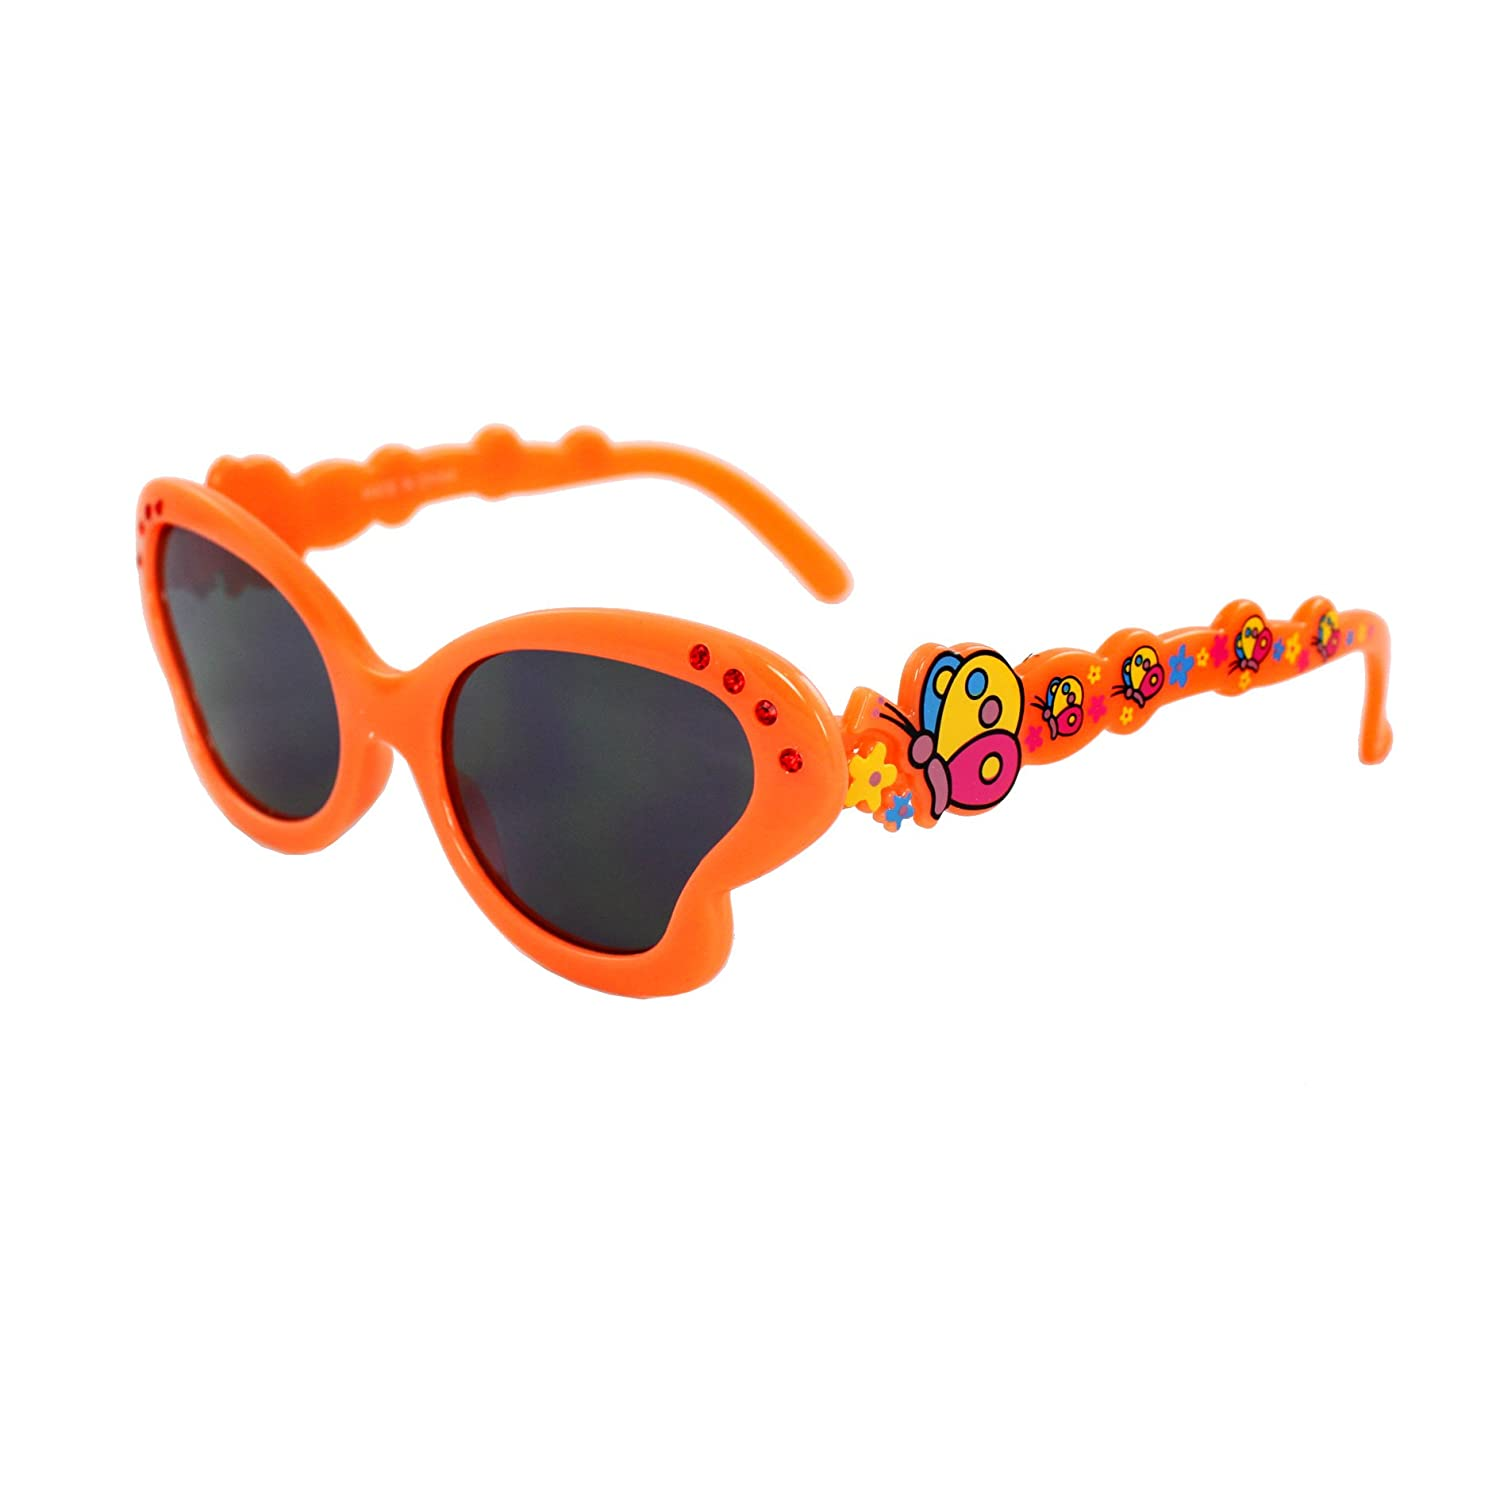 MLC Eyewear K0191-ORSM Kids Butterfly Sunglasses Orange Frame Smoke Lenses Design with Multicolor Butterfly Pattern.